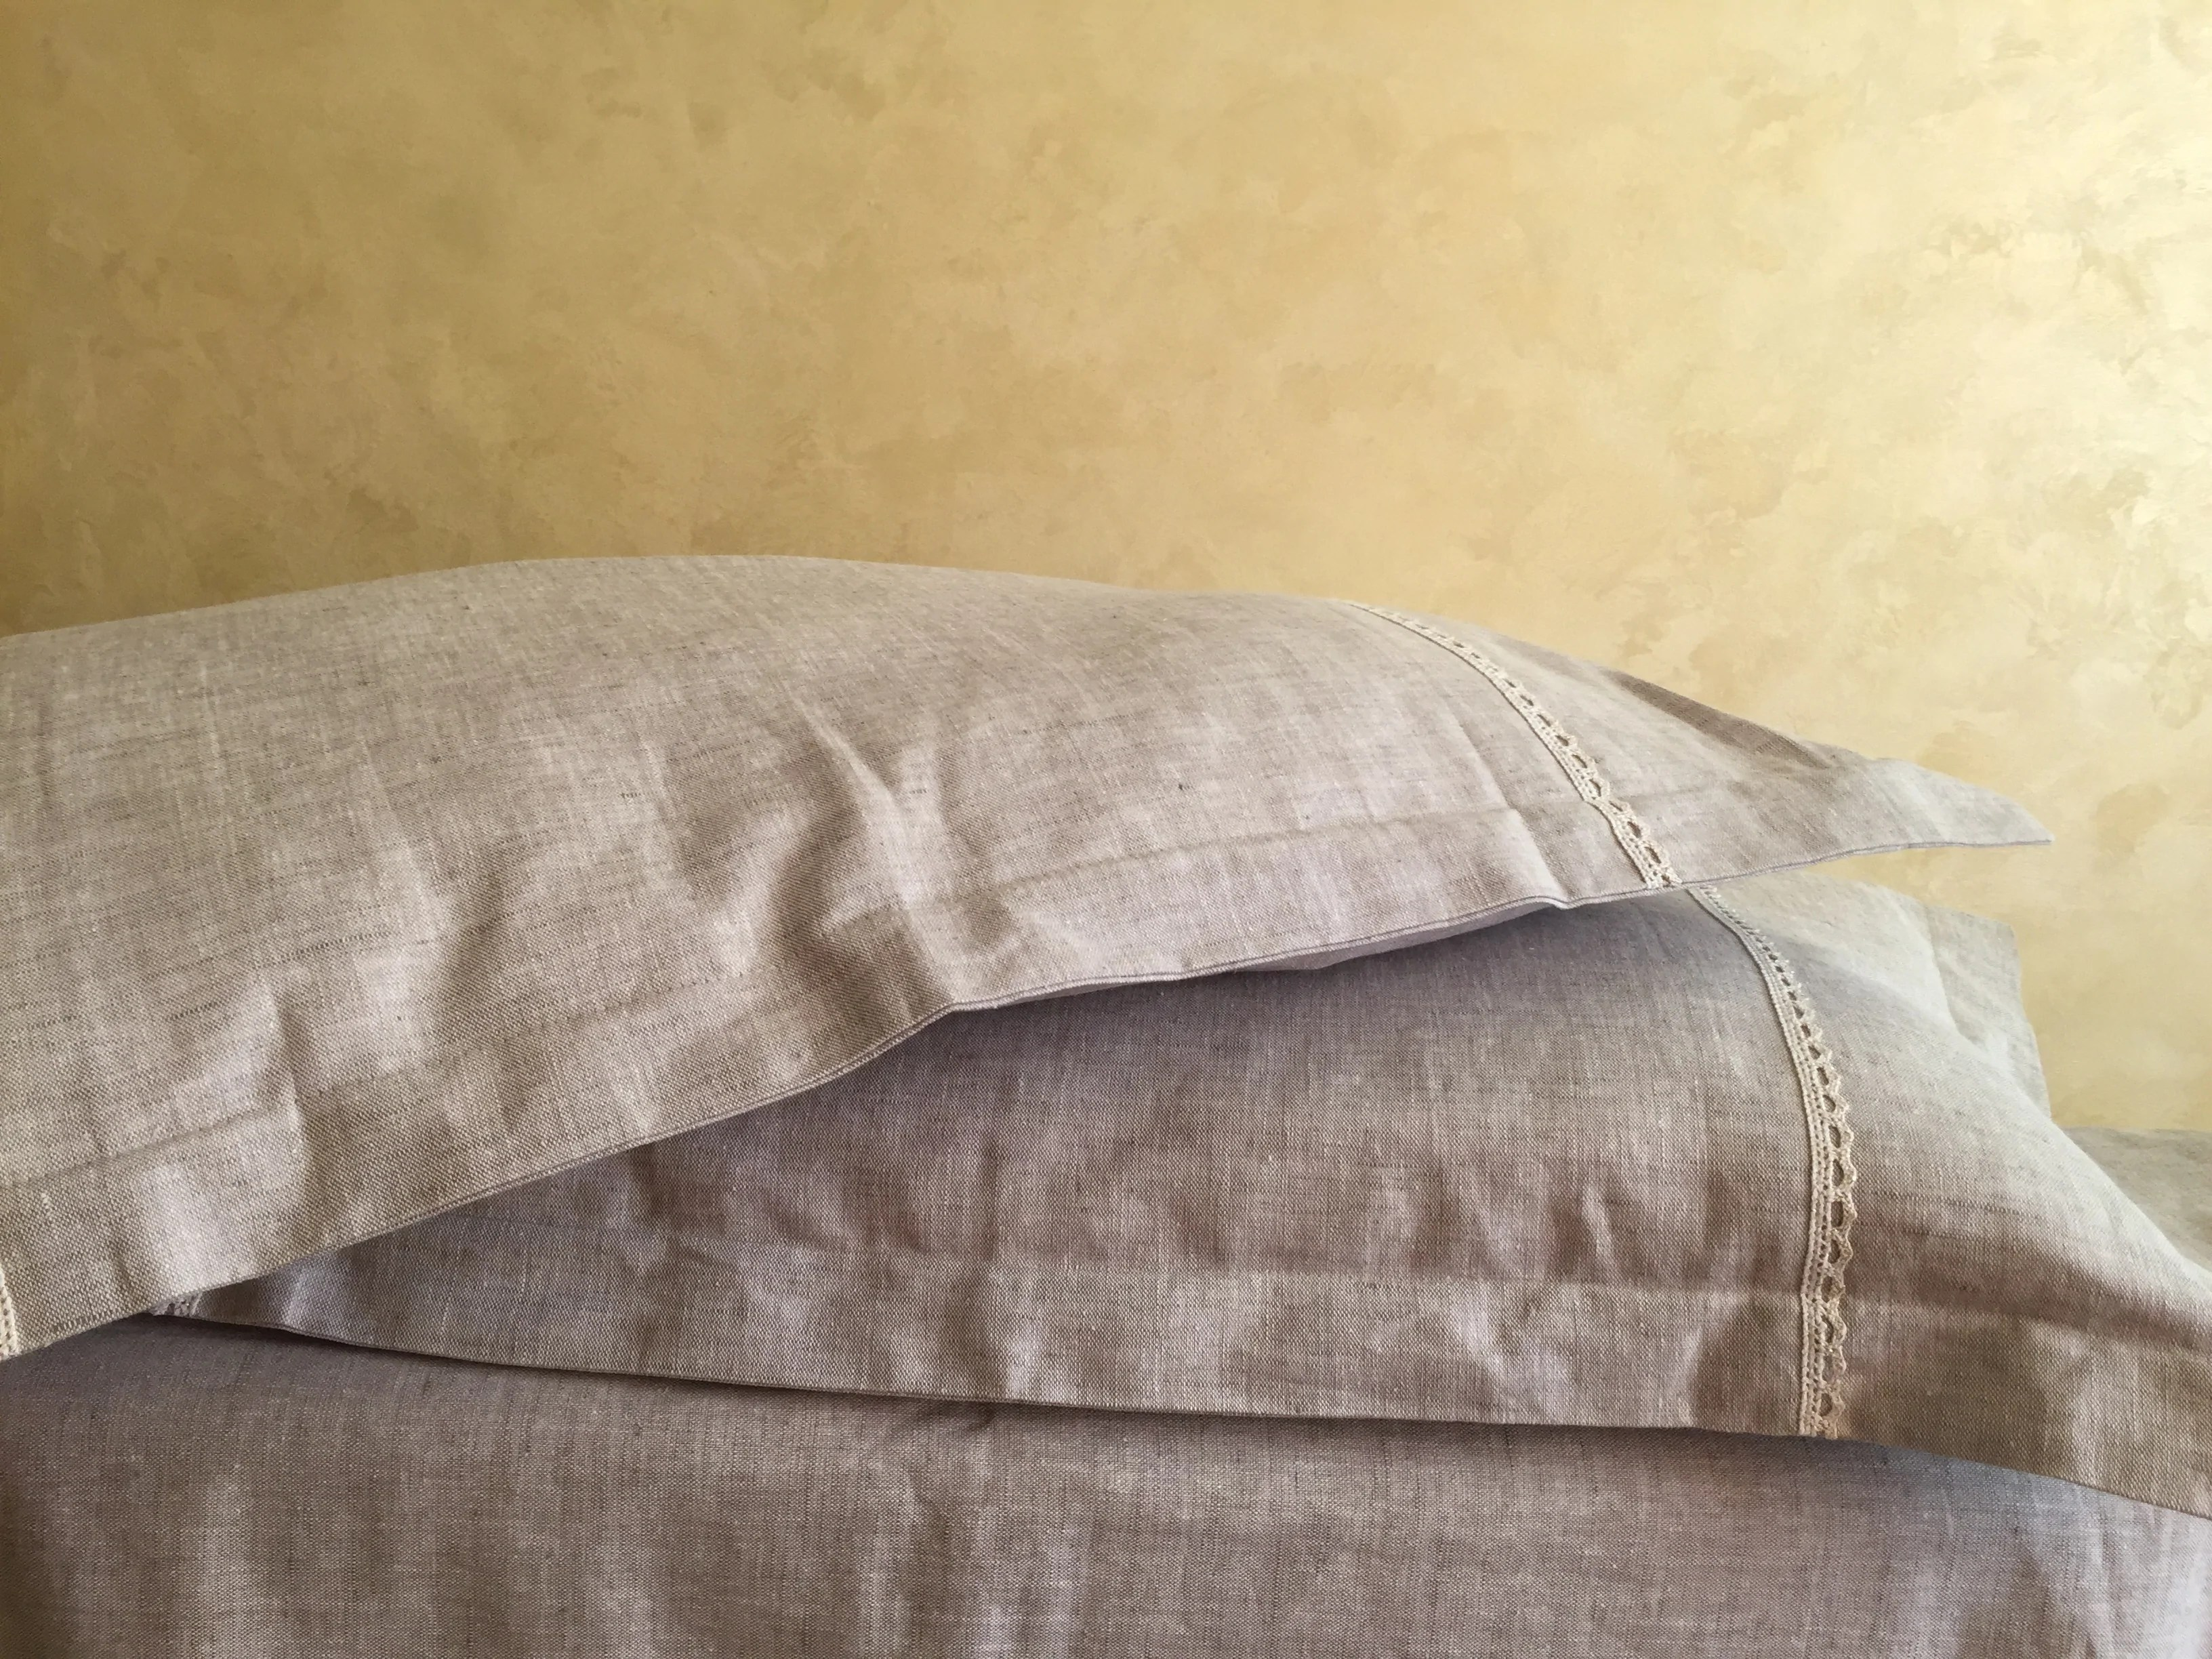 natural linen pillow sham with flanges and lace decor standard queen king euro sizes natural white or grey colors